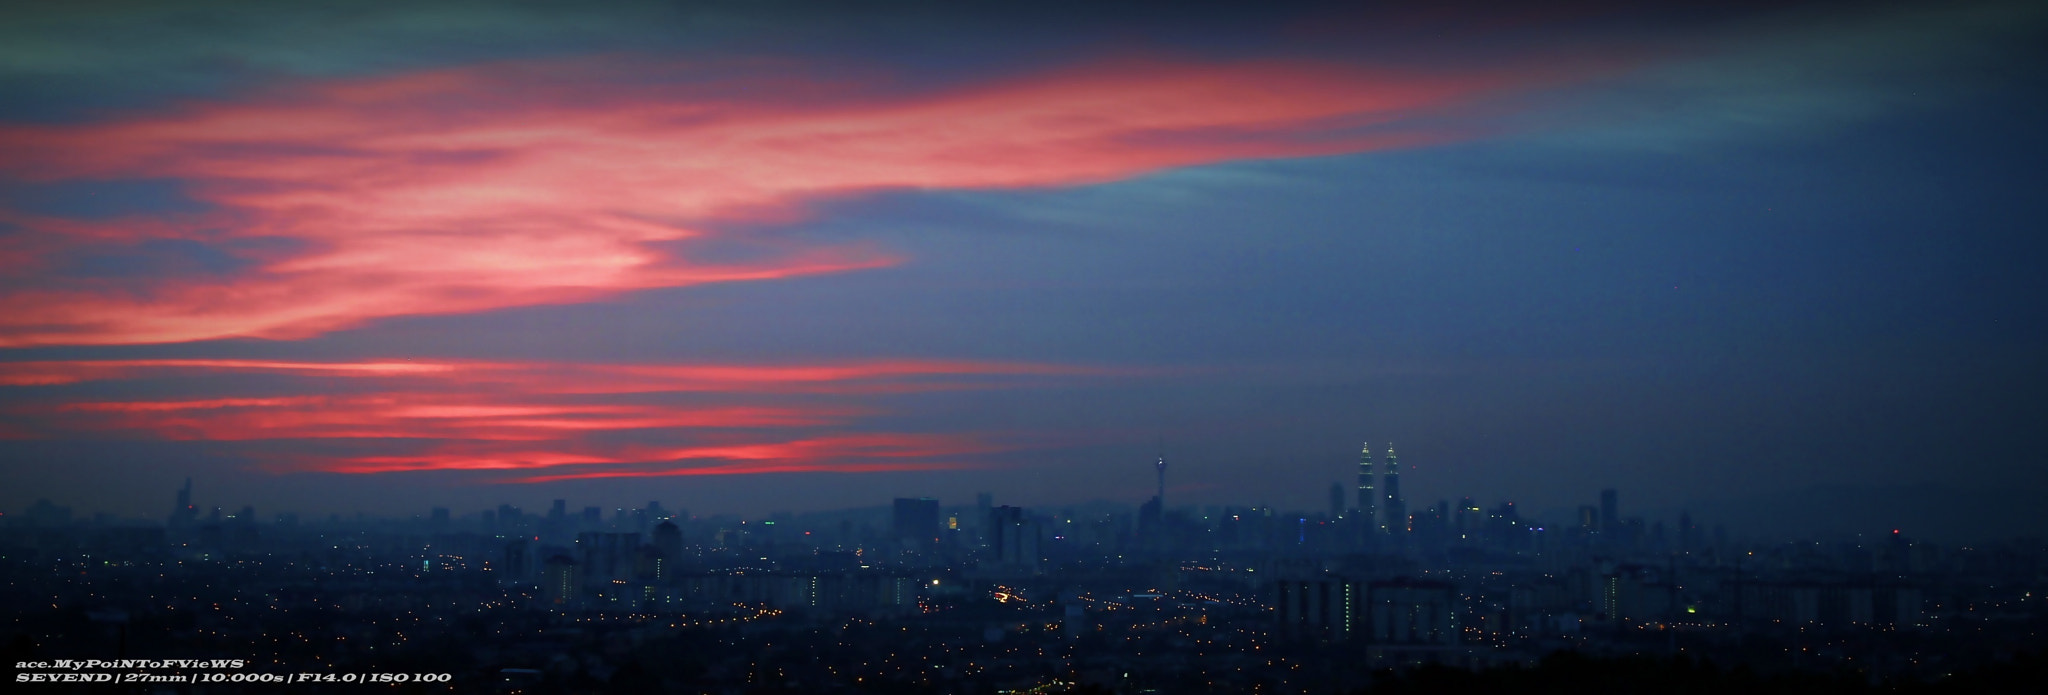 Photograph panoramic sunset over KL by Zaki Ahmad on 500px